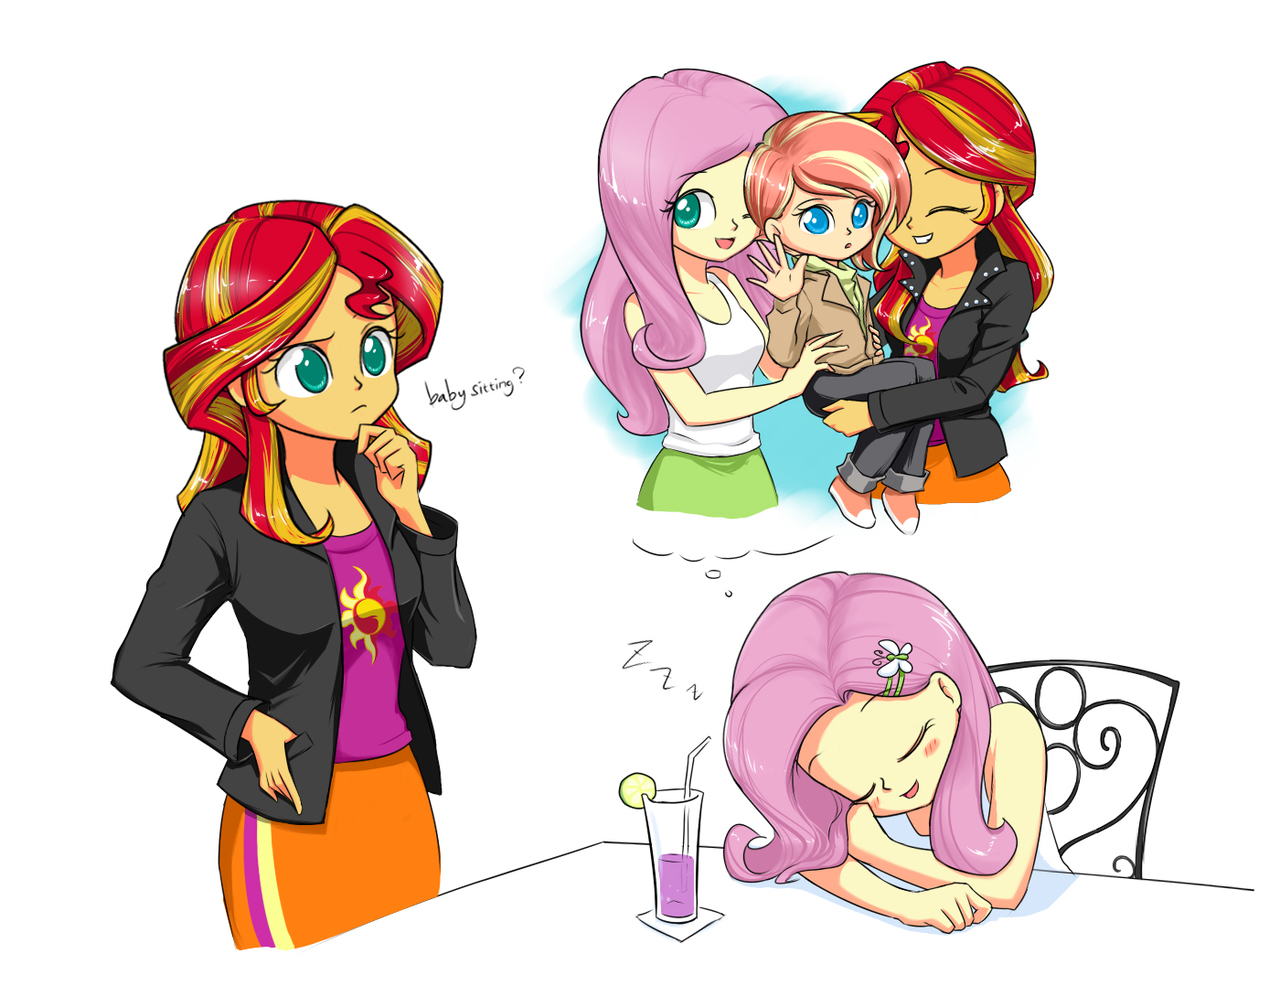 Yeah Baby Sitting My Little Pony Equestria Girls